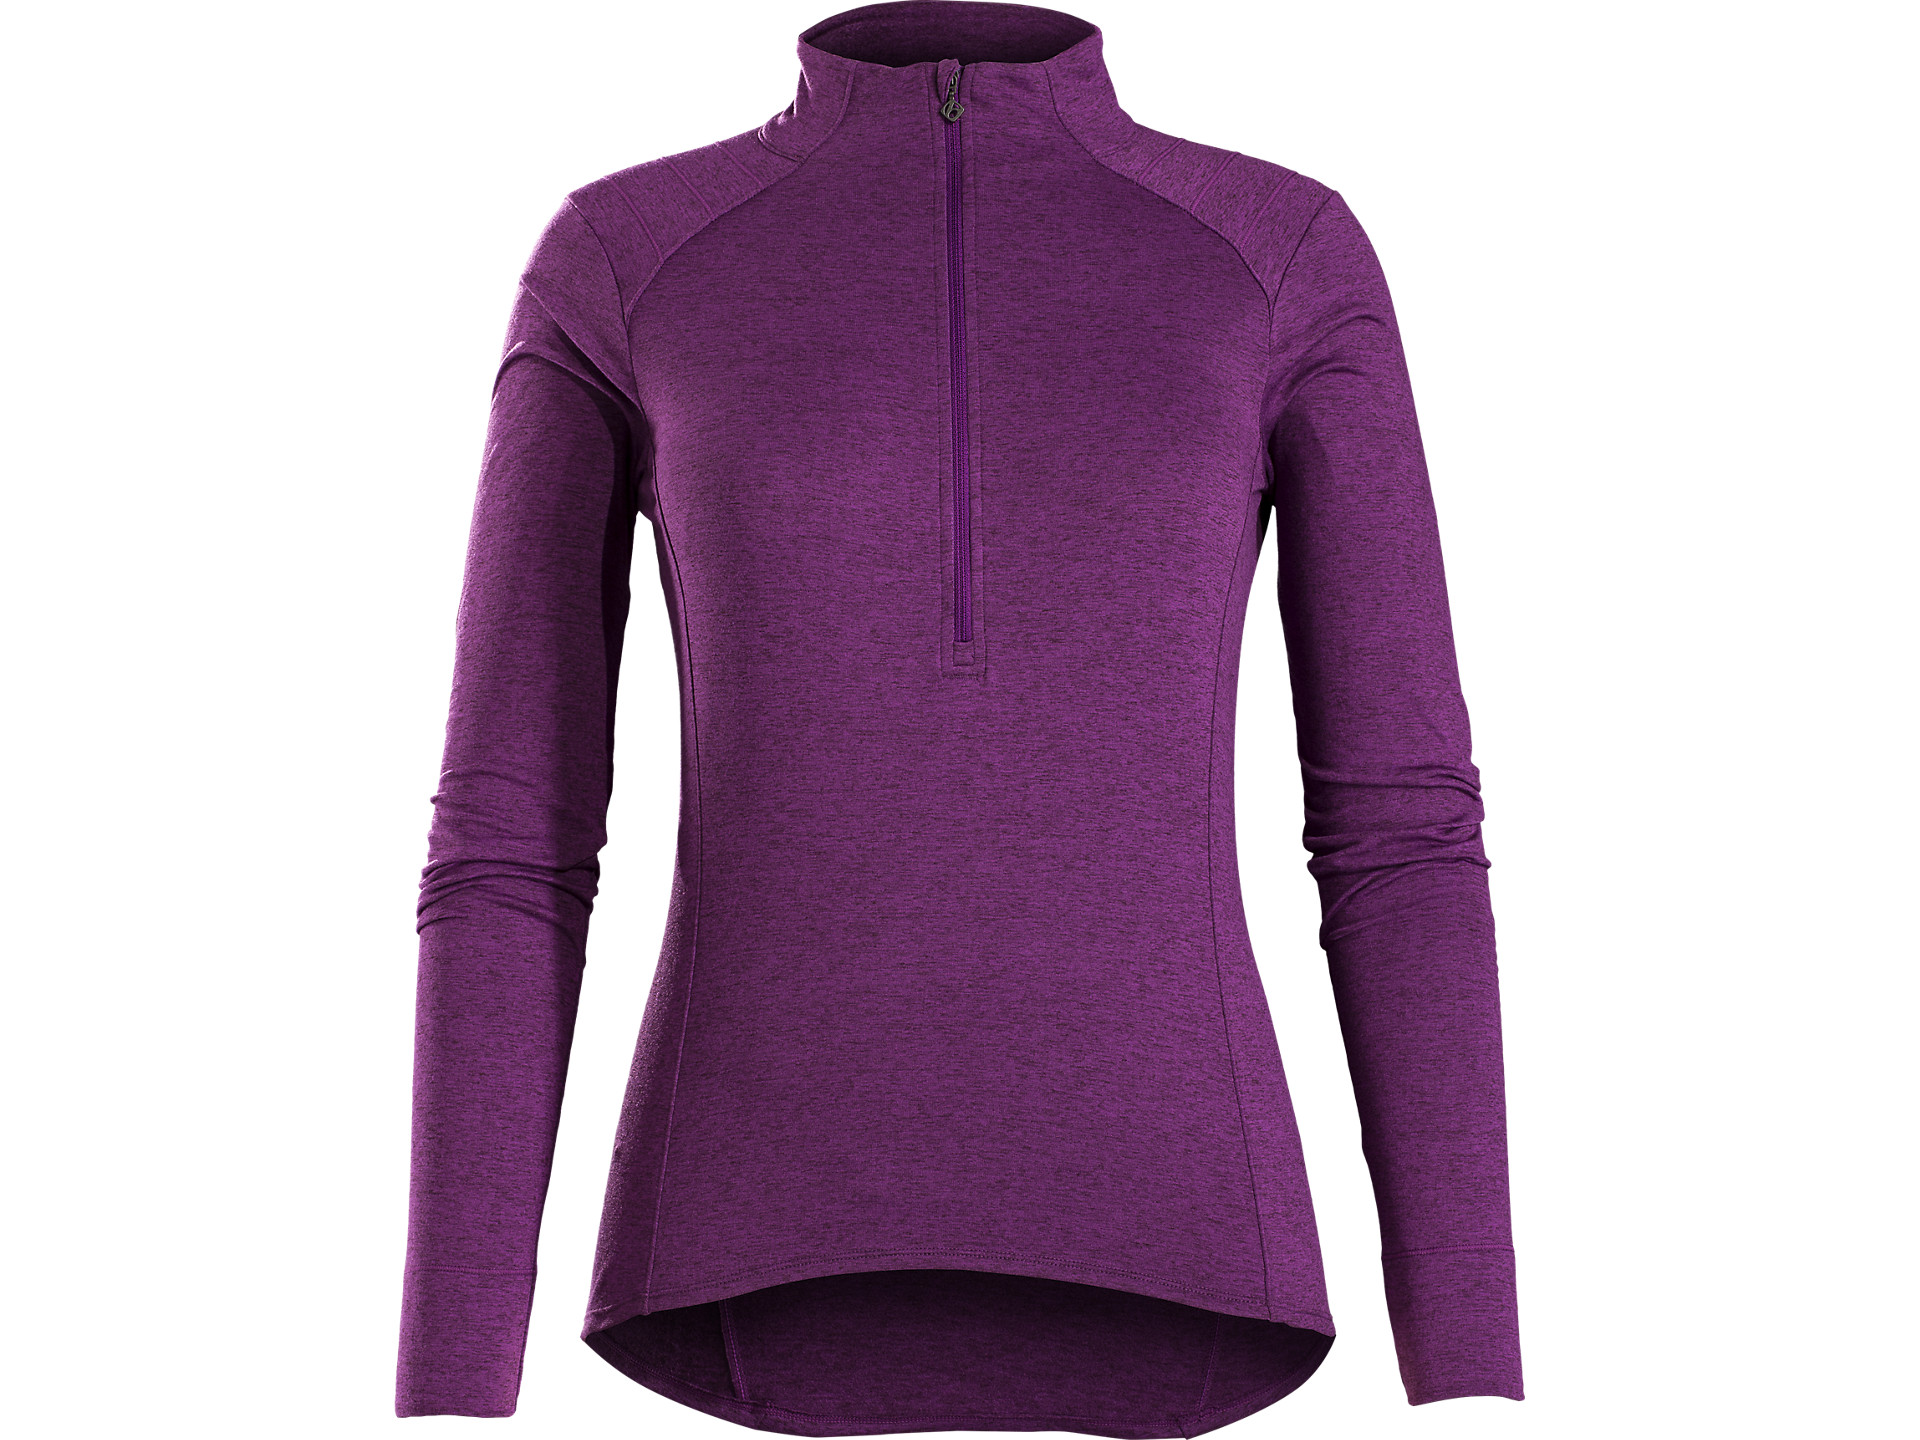 Bontrager Vella Women s Long Sleeve Thermal Cycling Jersey  6bc798da3